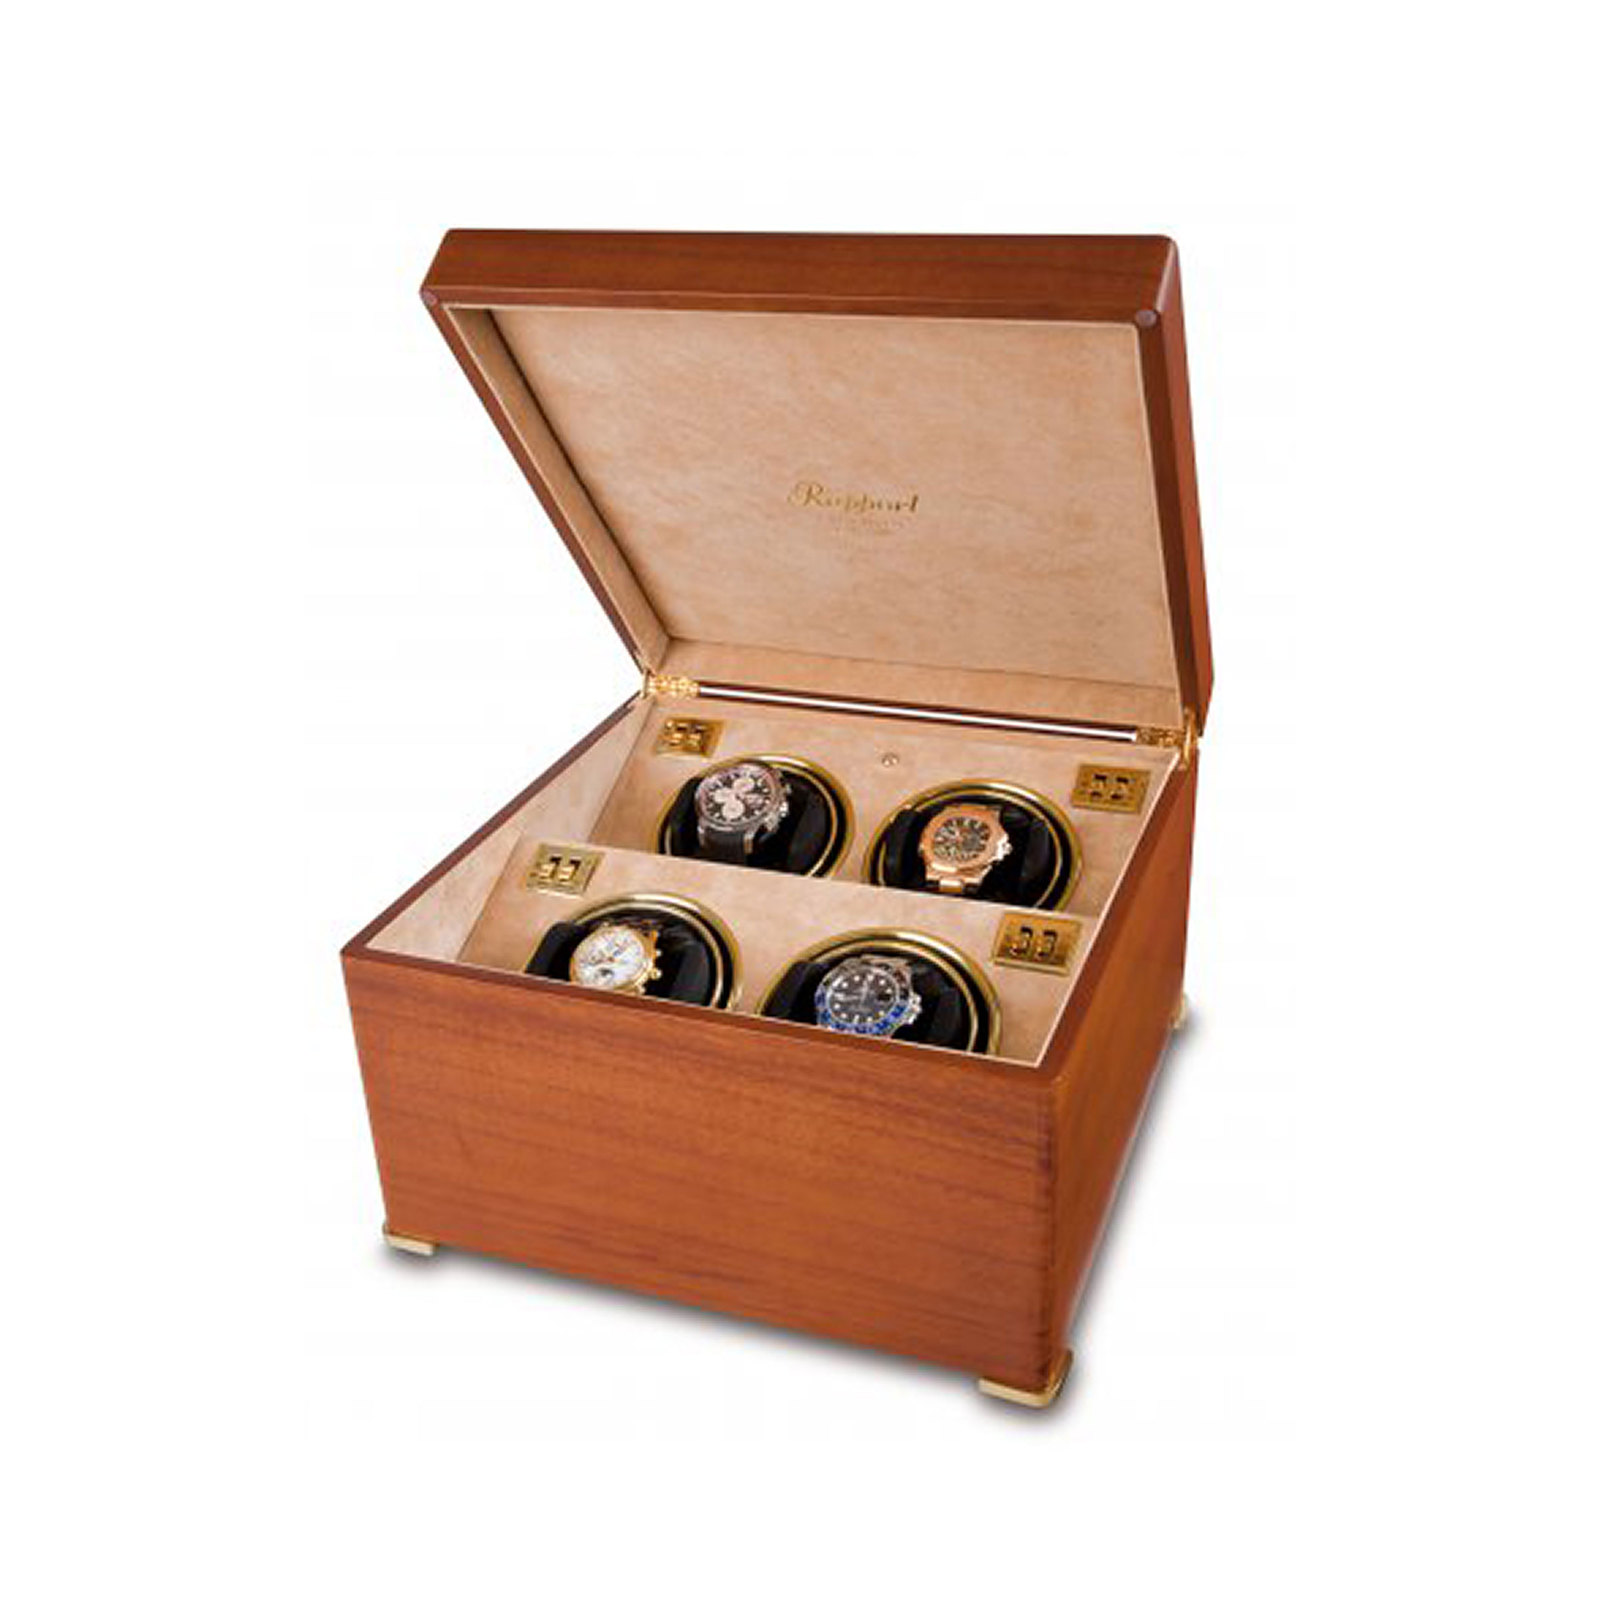 Rapport Satin Quad Watch Winder